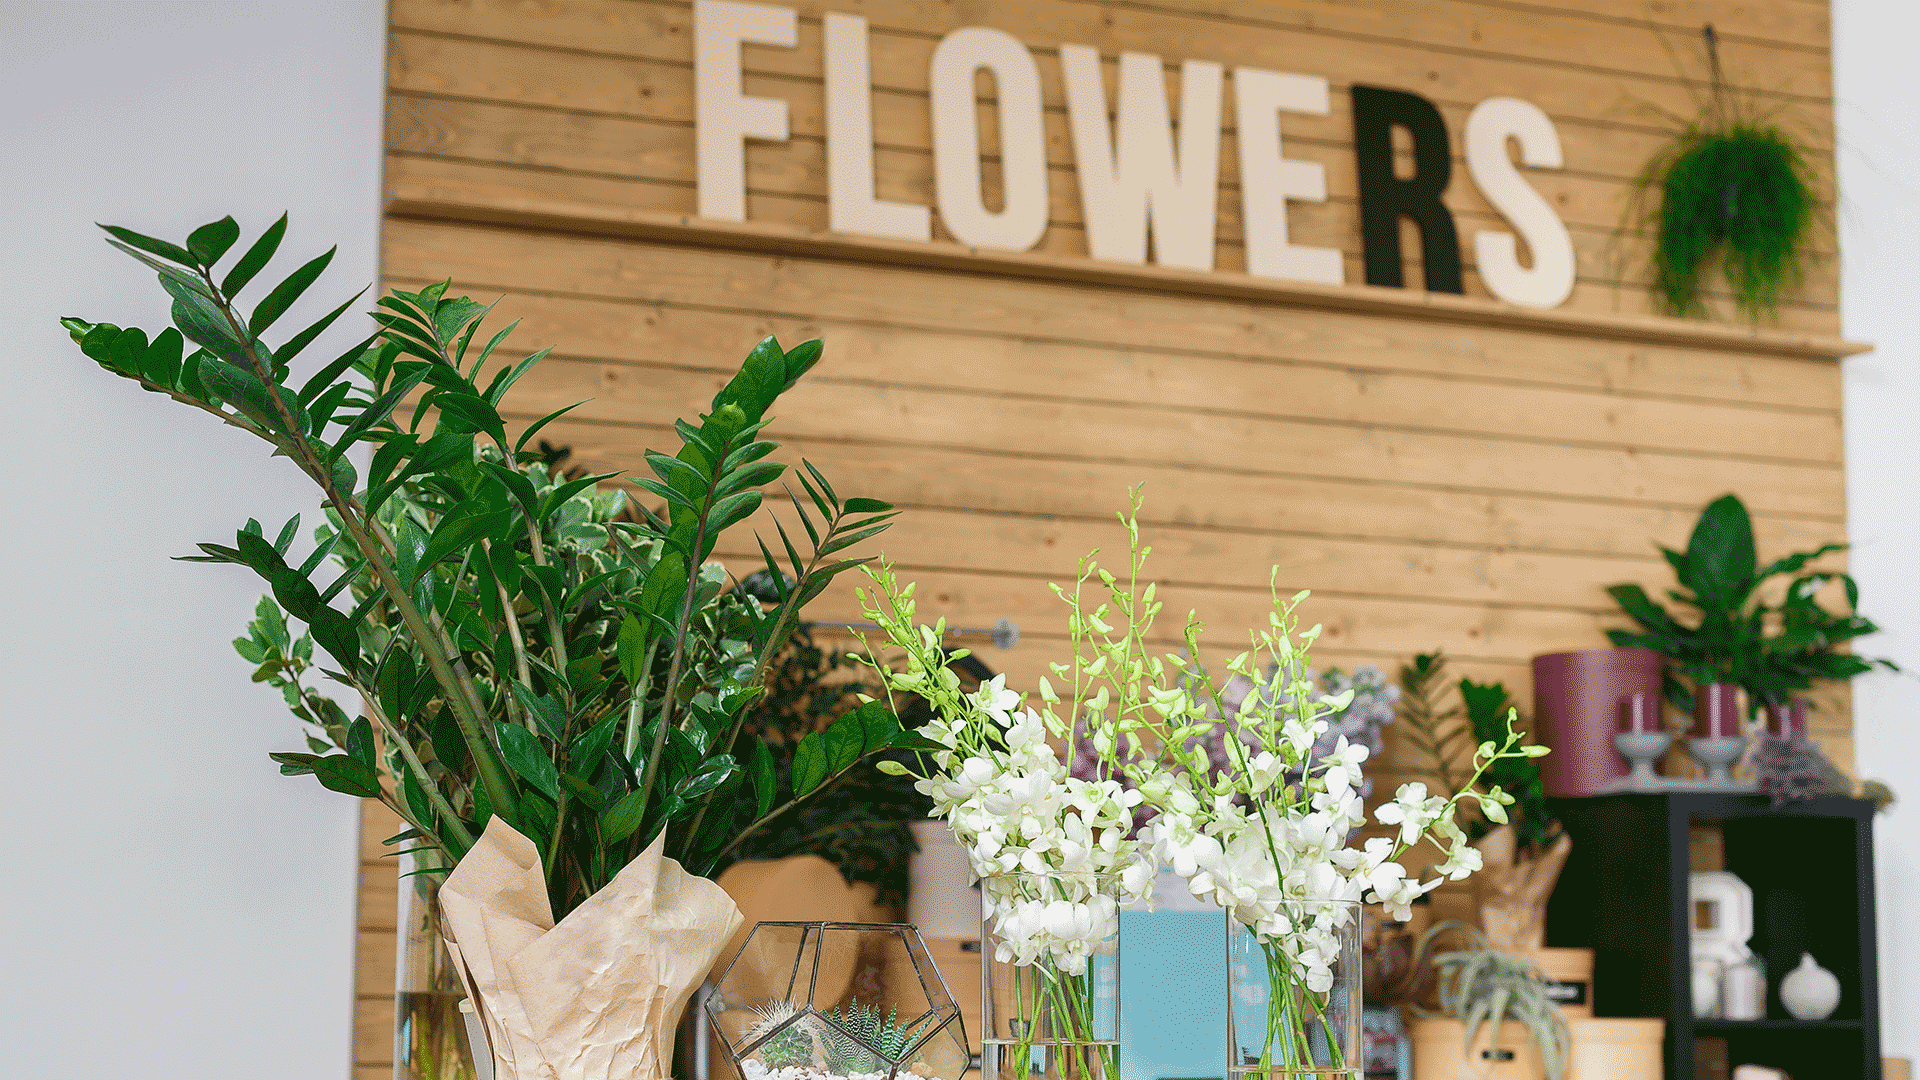 A small business with a sign that reads 'Flowers' in the background.